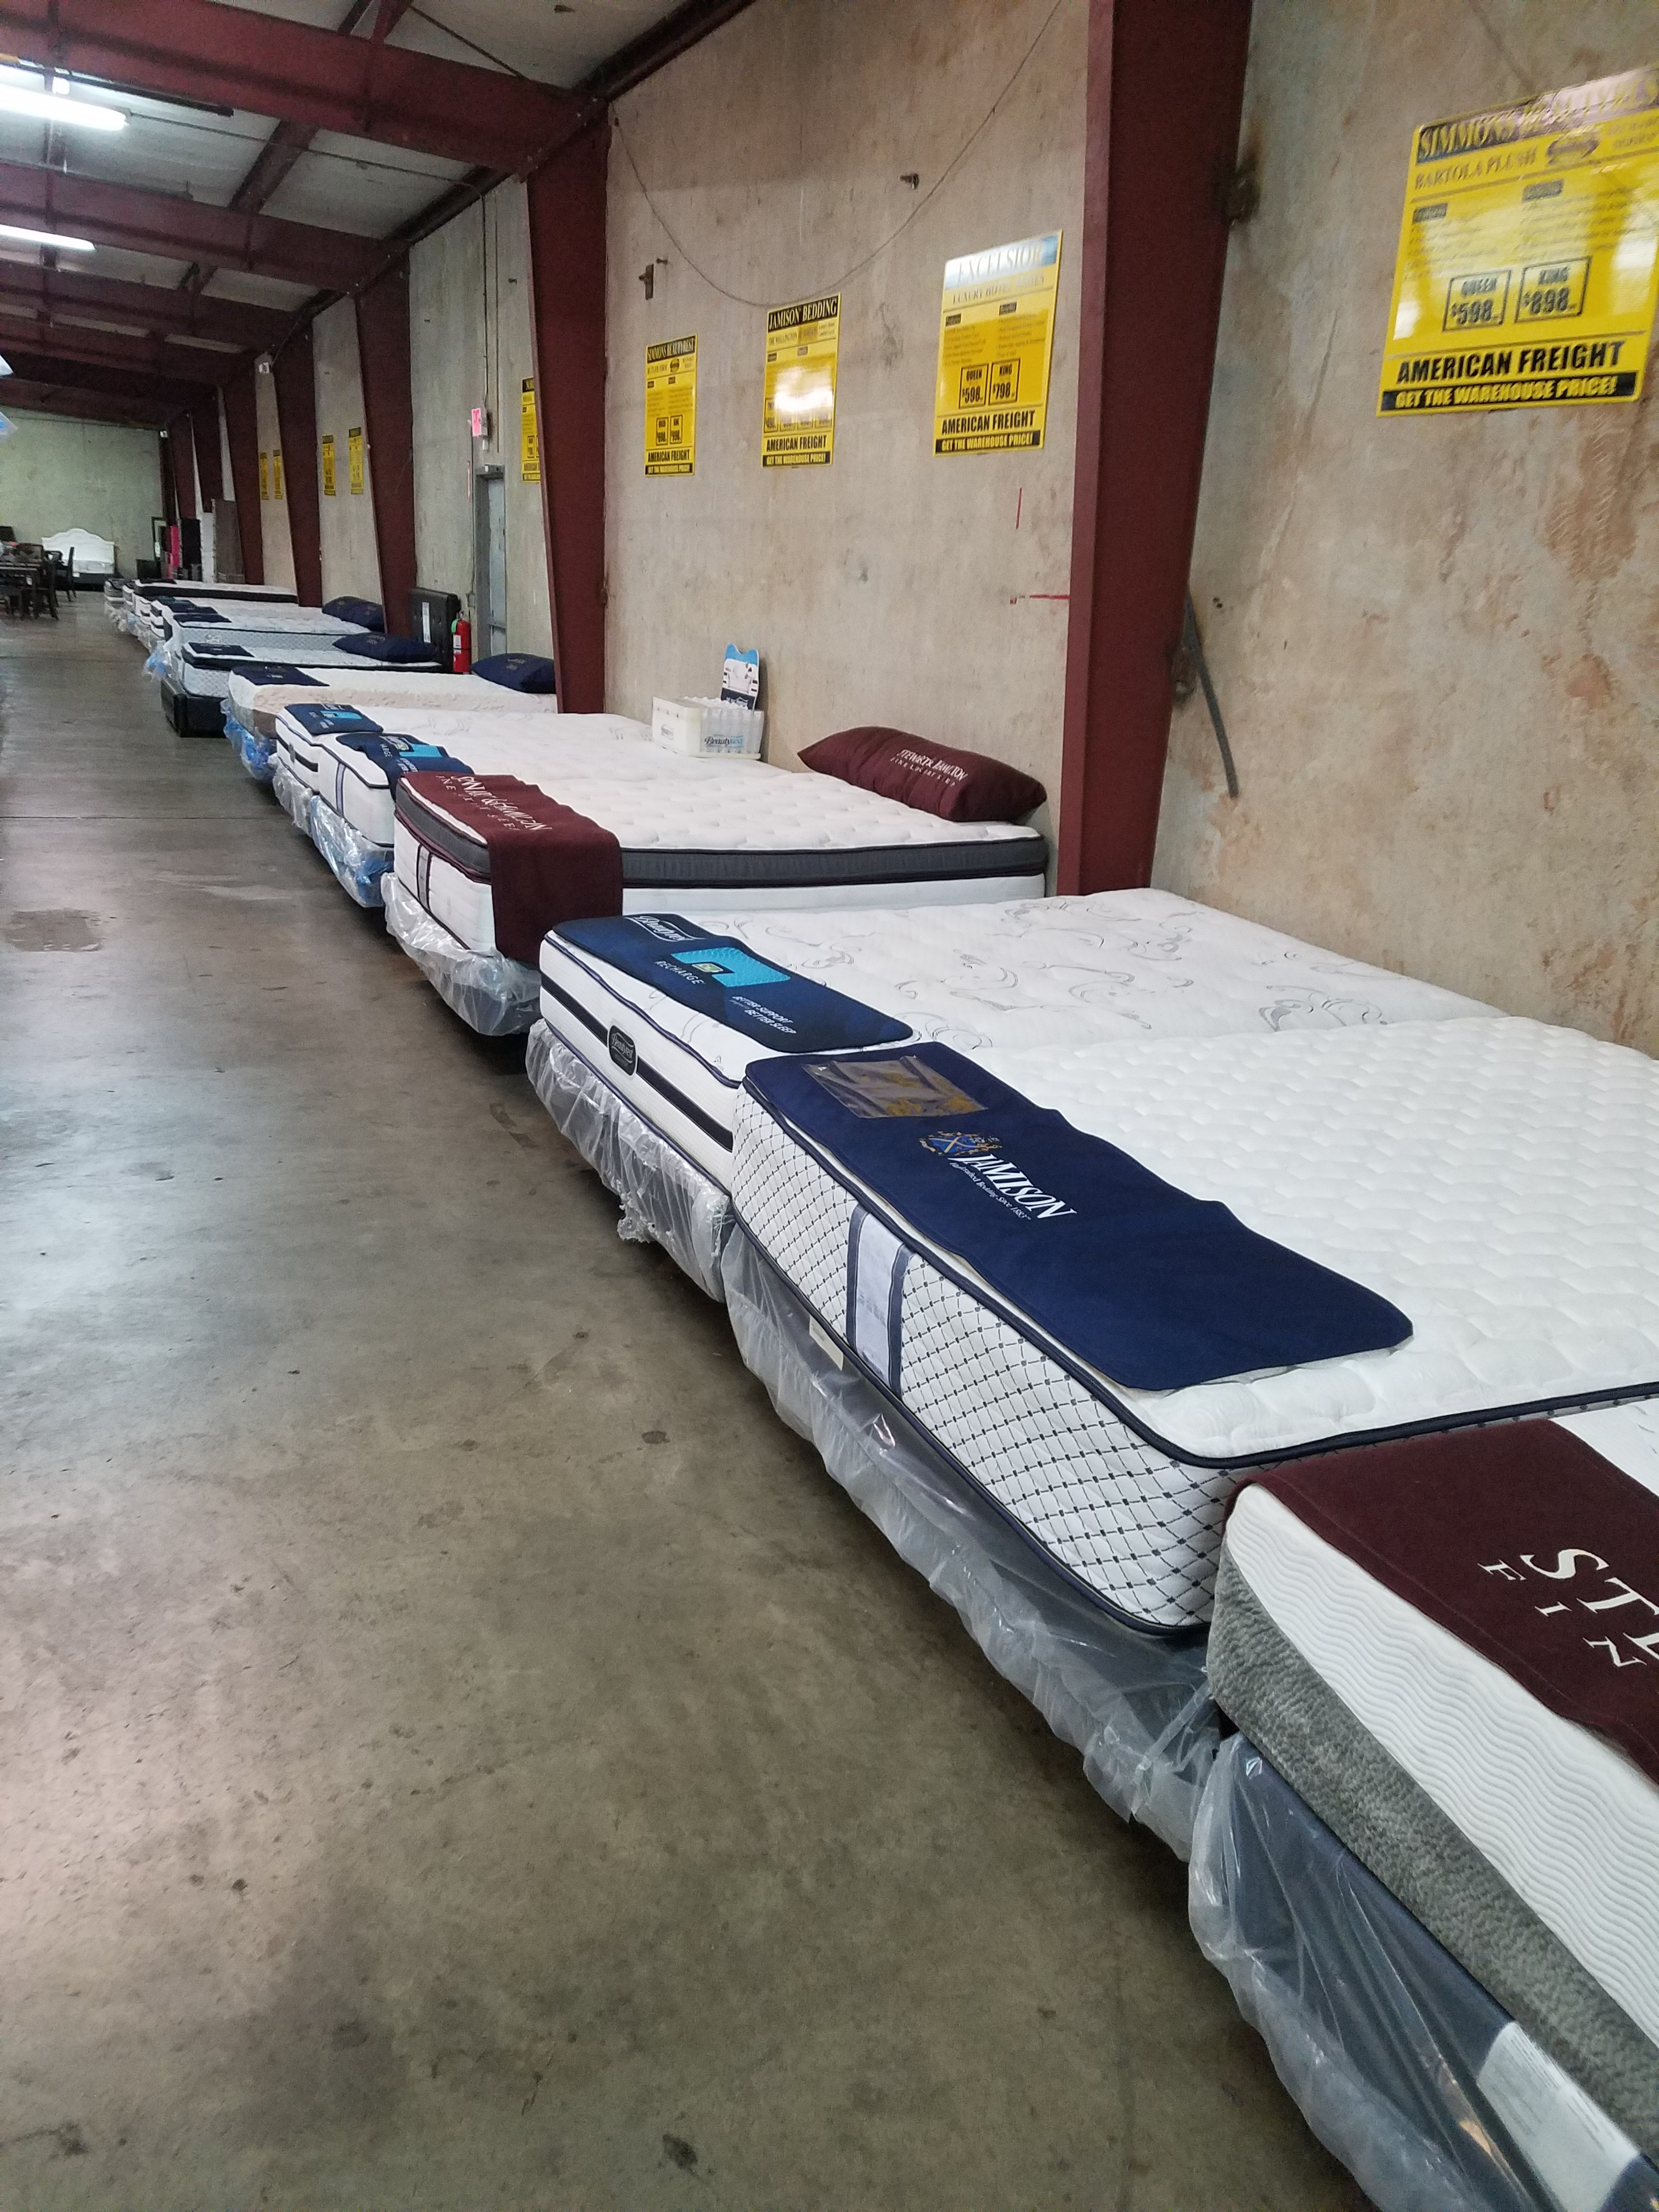 American Freight Furniture And Mattress In Shreveport LA